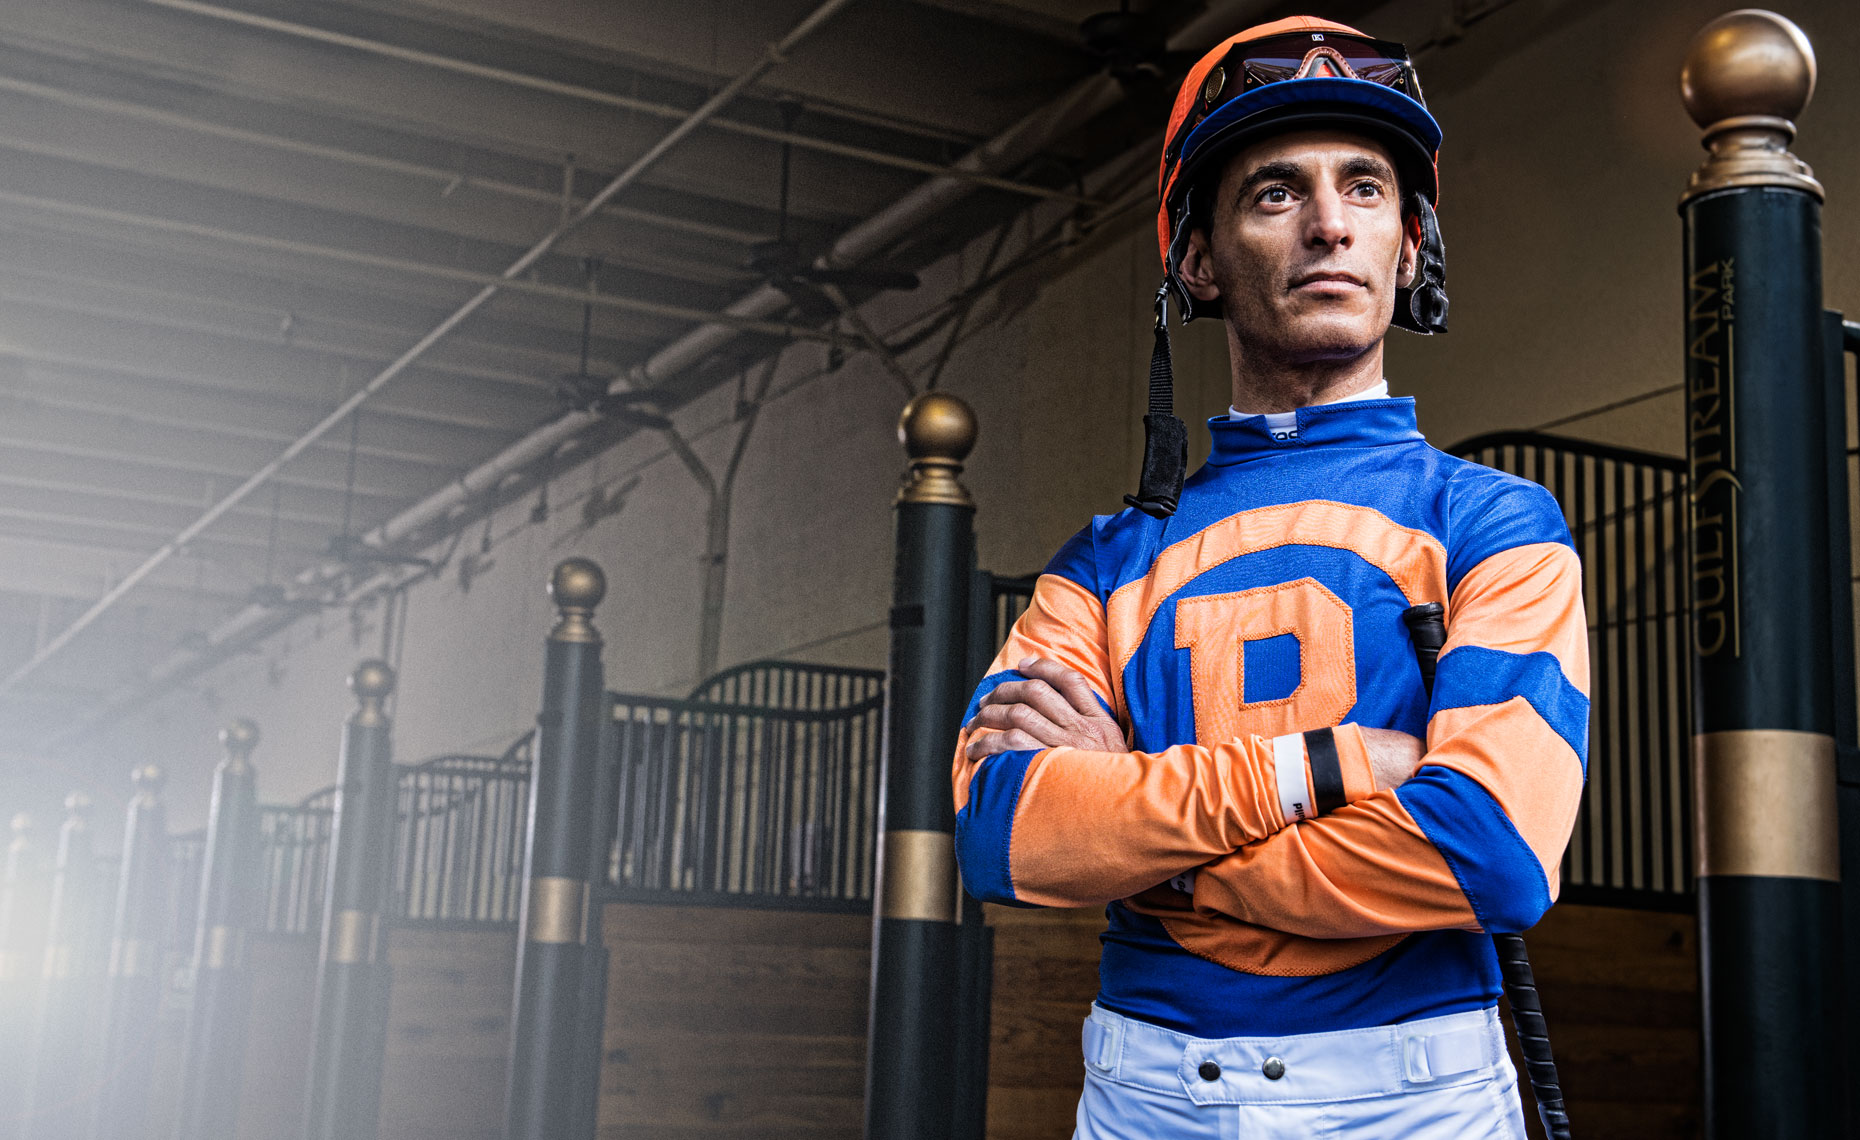 Portrait of jockey, John Velazquez by Scott Redinger-Libolt / redphoto